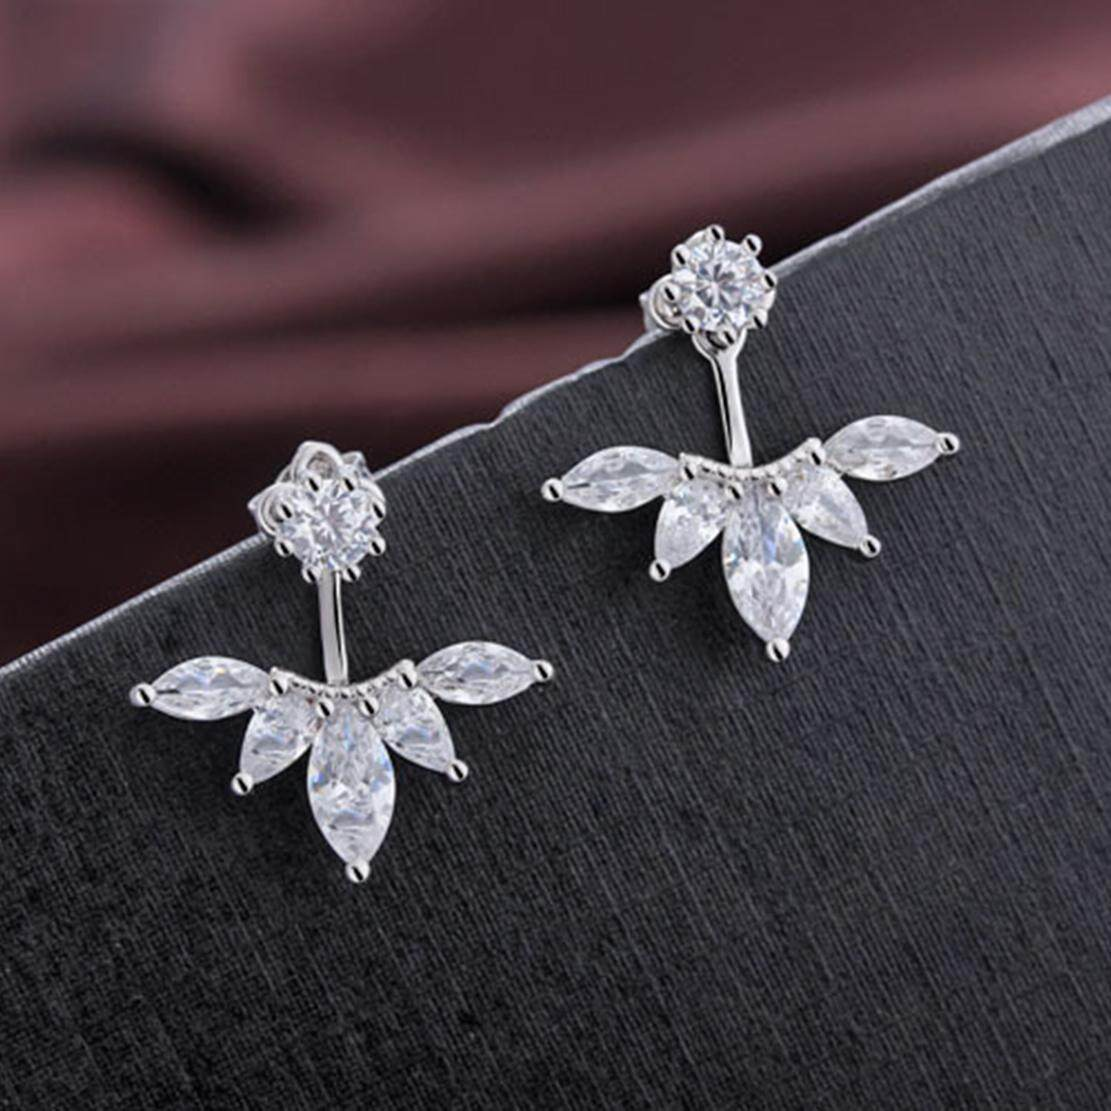 Spesifikasi Bc Silver Olive Like Earrings Anti Allergy Shining Fashion Simple Copper Plated Platinum Zircon Simulation Diamond Earrings For Lover Mom Lady Bc